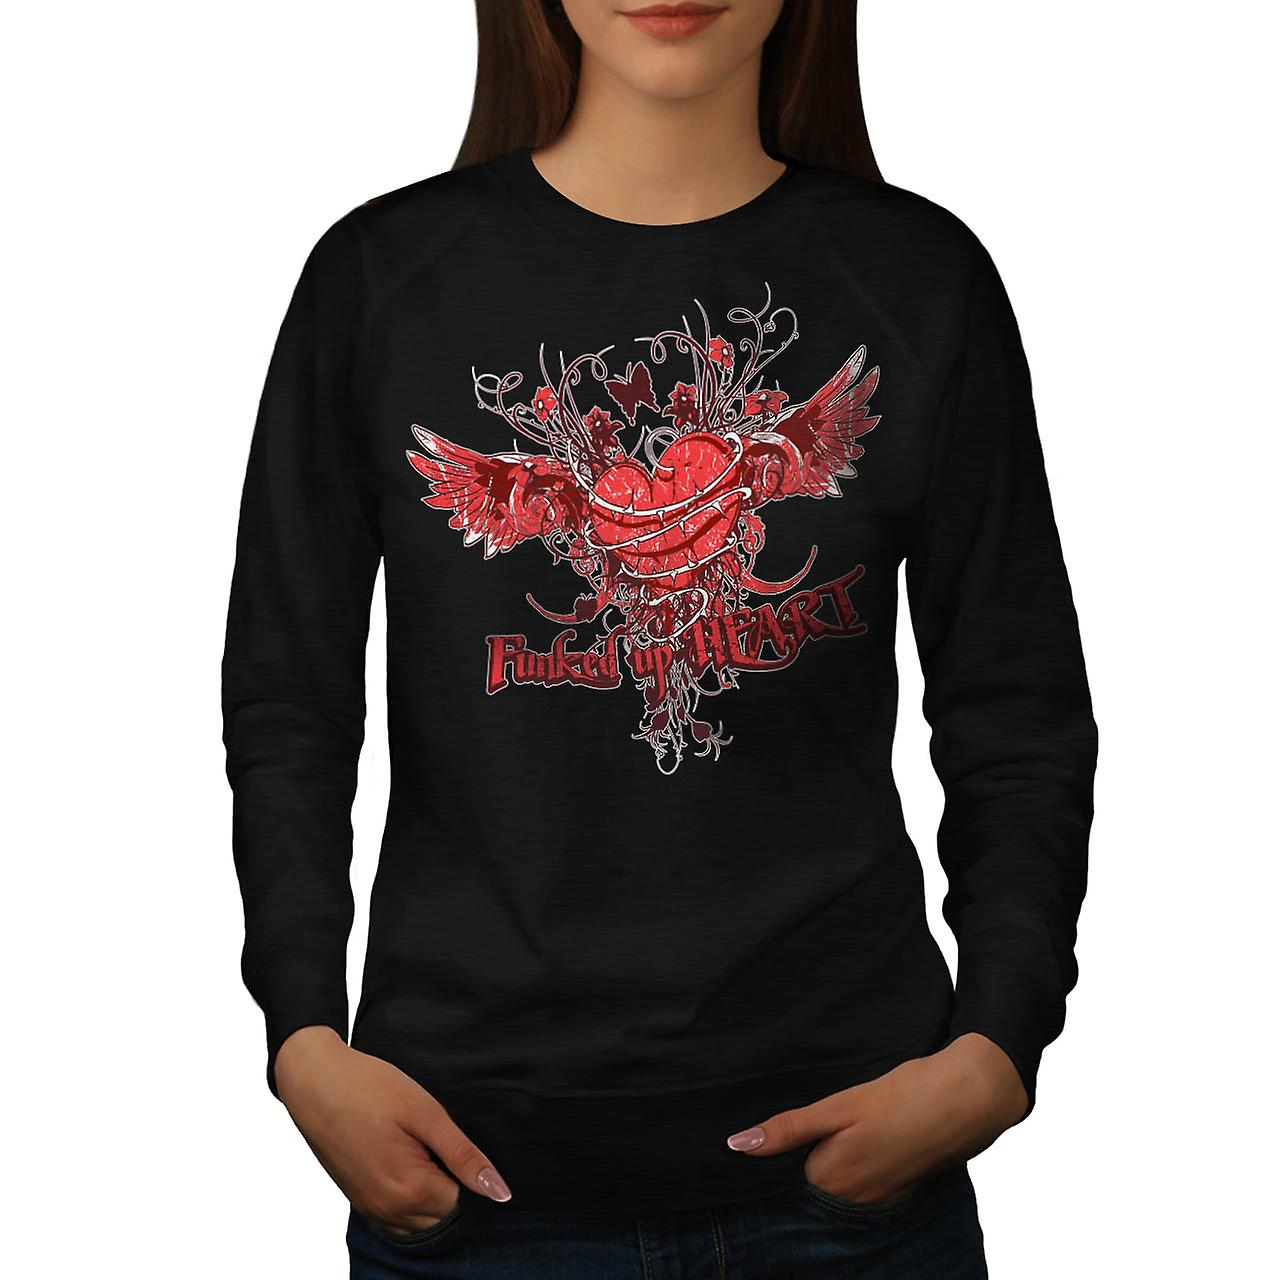 Funked Up coeur amour épine Rose femme Black Sweatshirt | Wellcoda